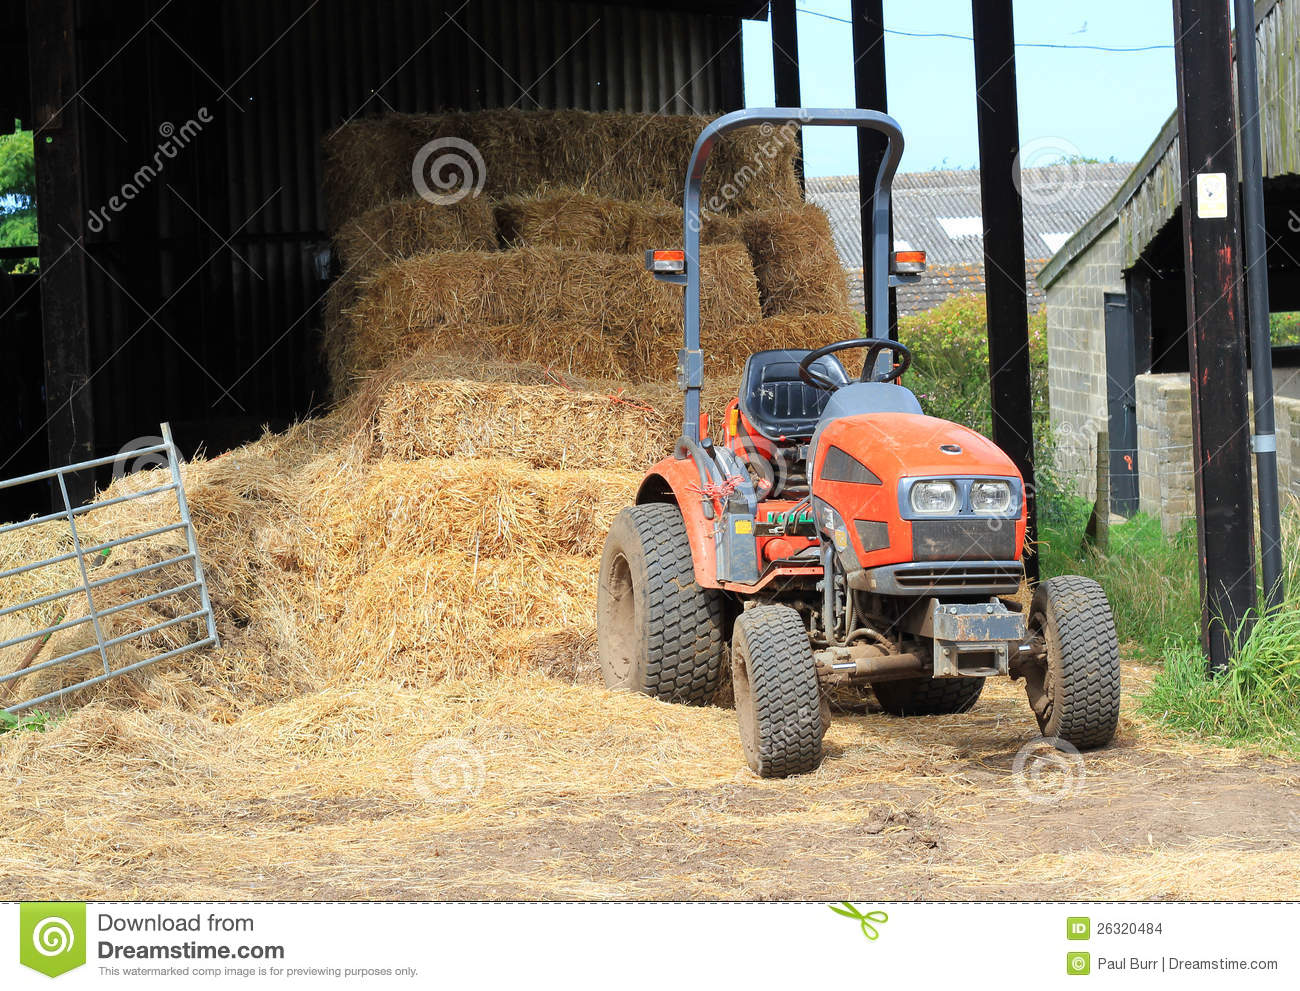 how to buy bale of straw online canada